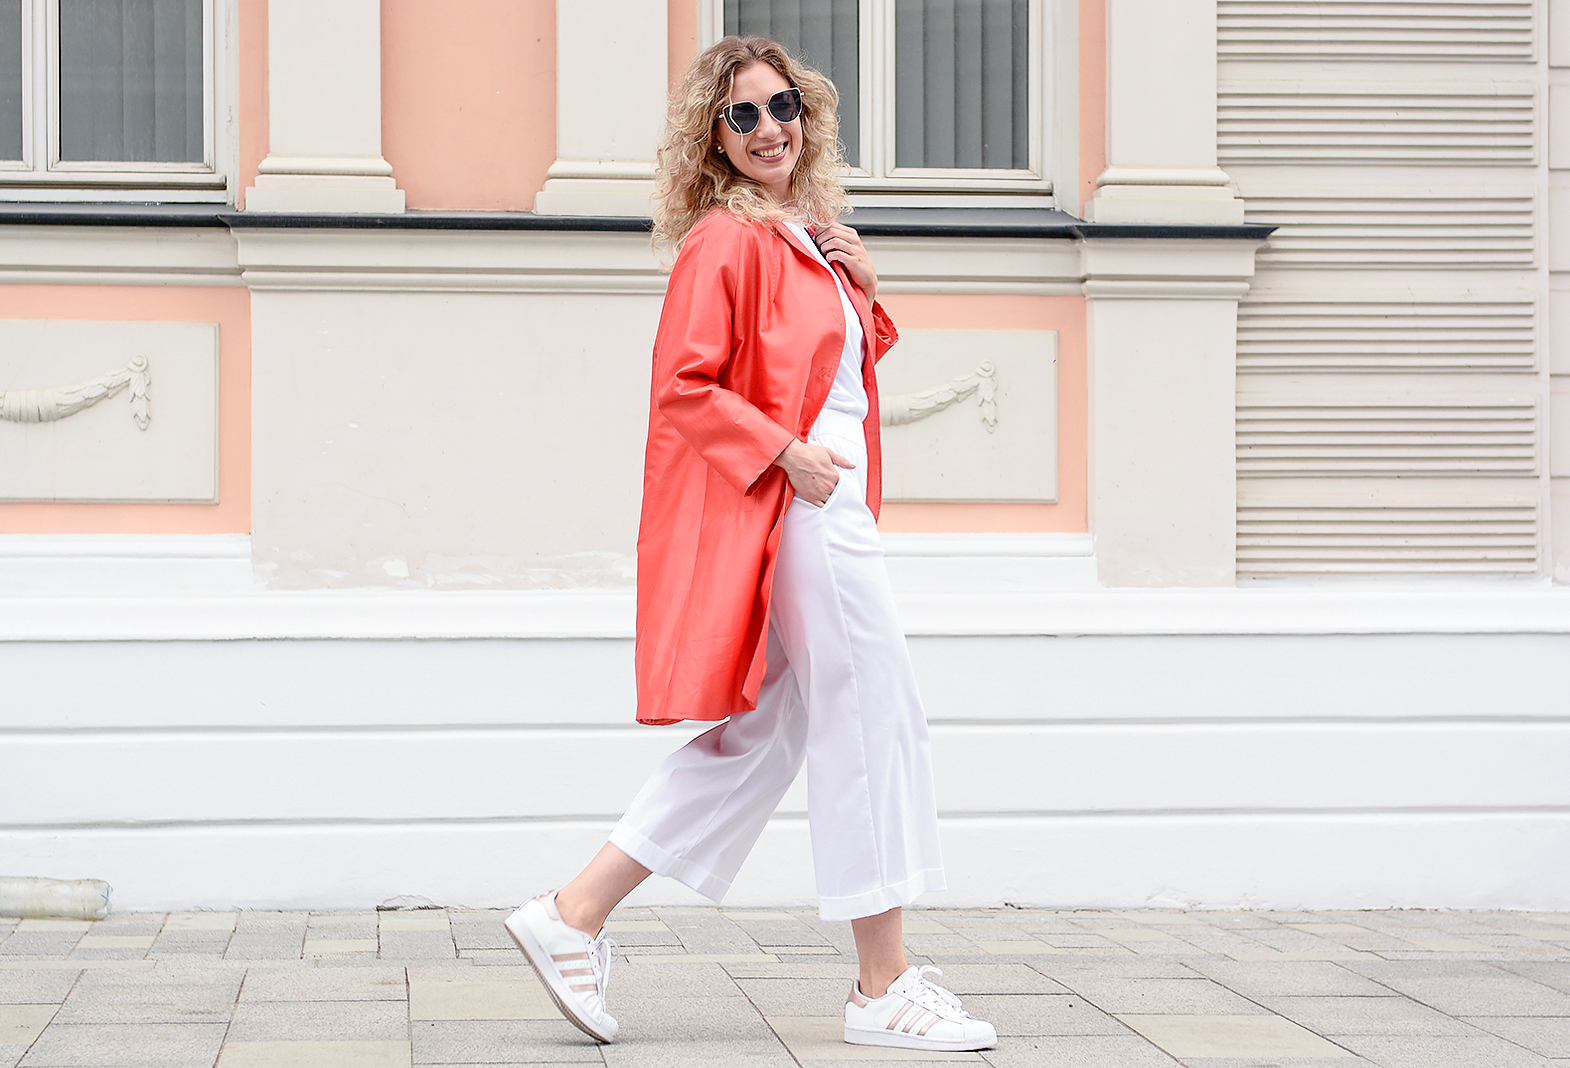 rita_maslova_italbazar_pastel_outfit_cold_summer_looks_sport_casual_orange_coat